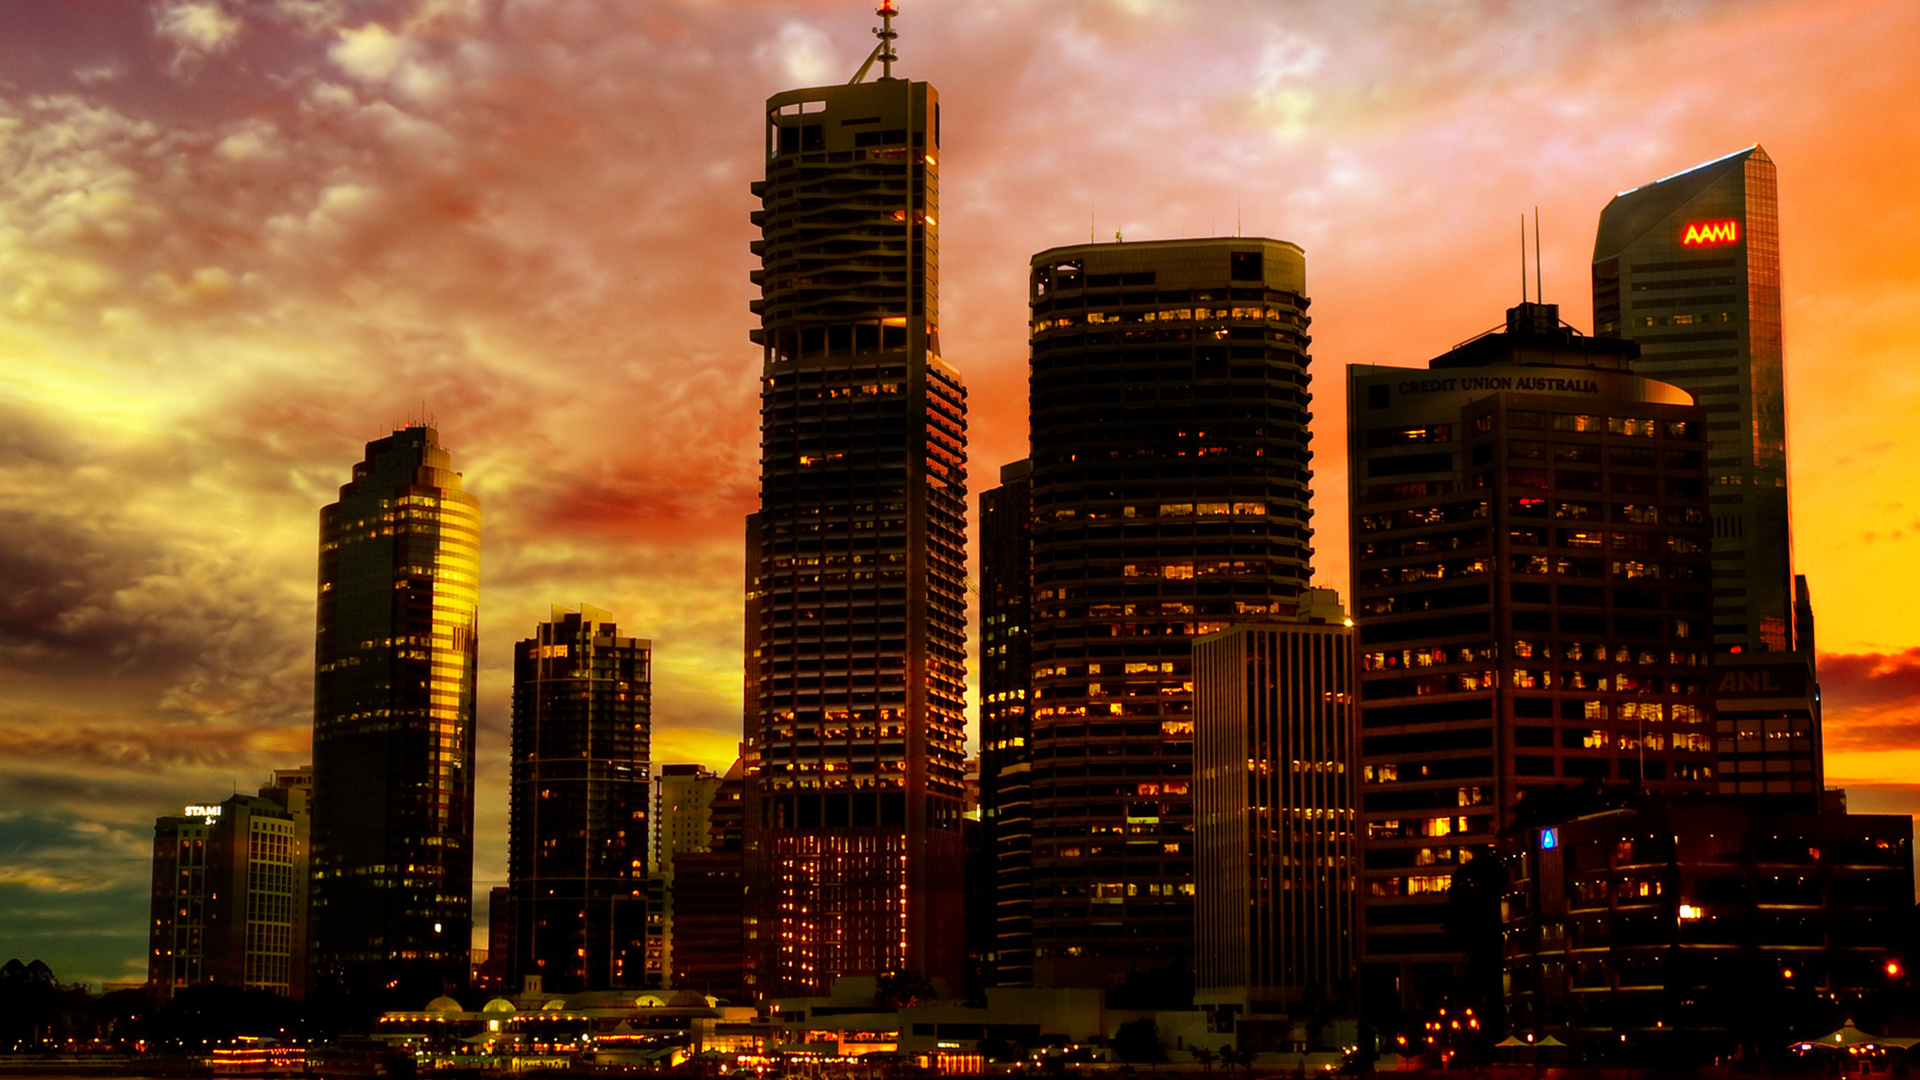 Sunset City Backgrounds - HD Wallpapers